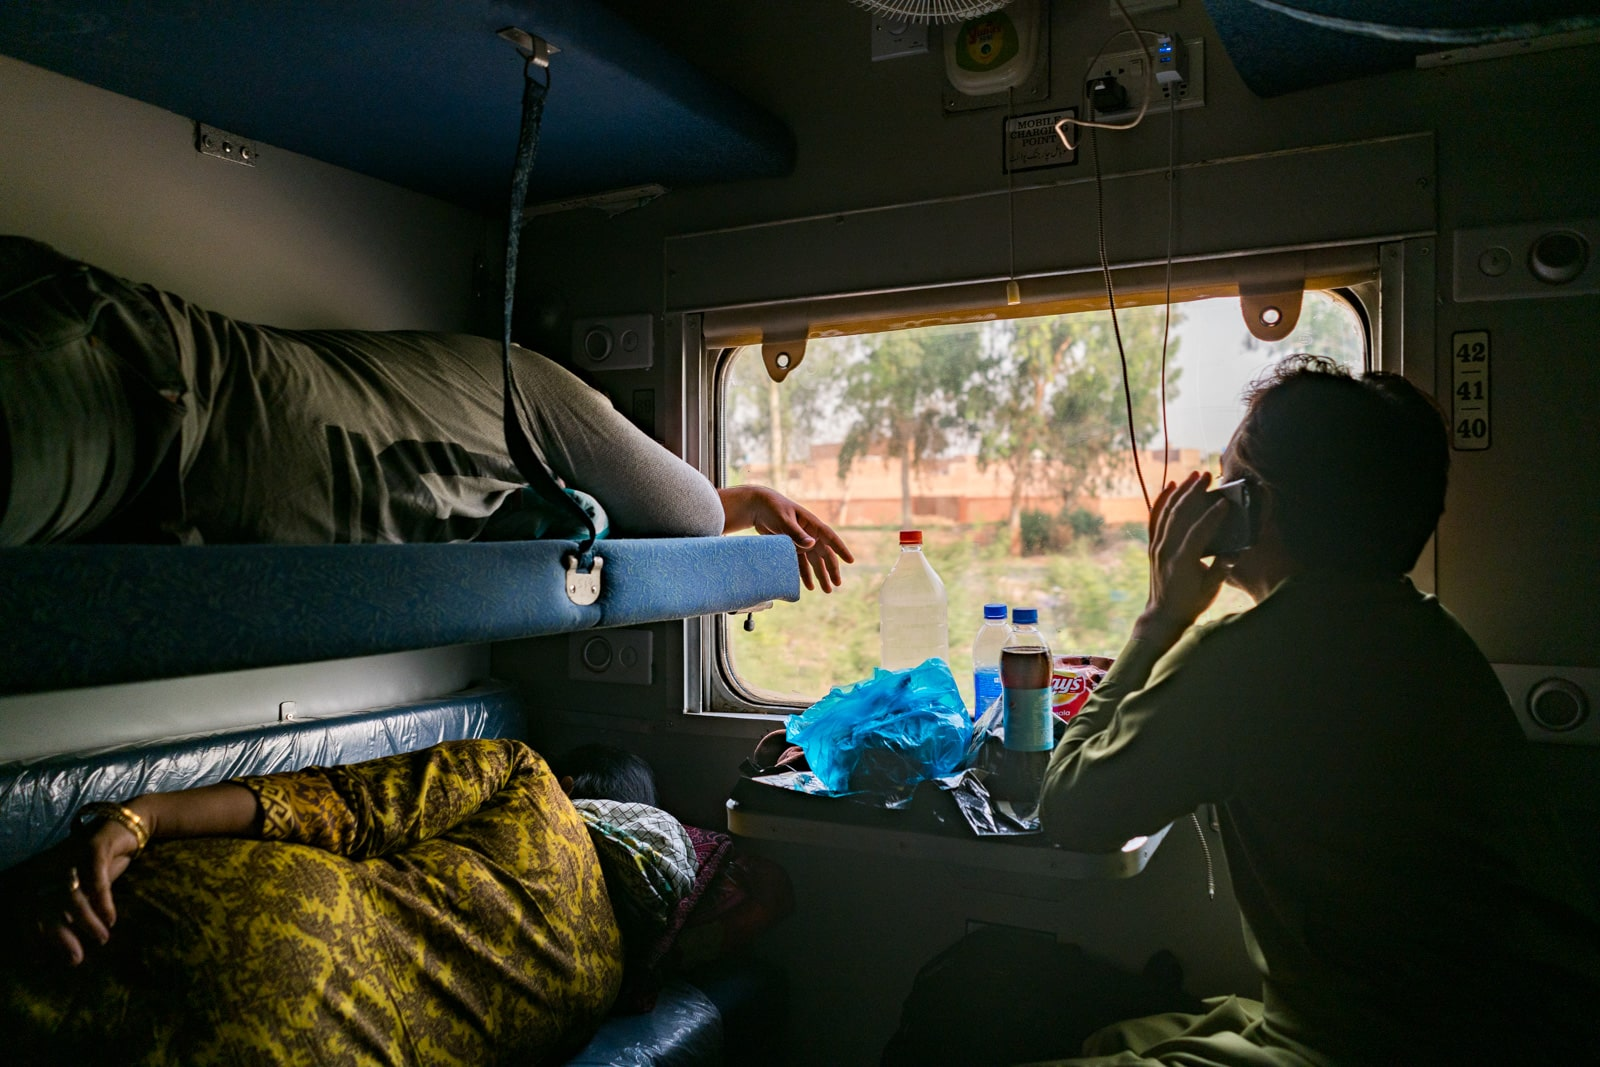 Passengers in AC Sleeper class on a train in Pakistan